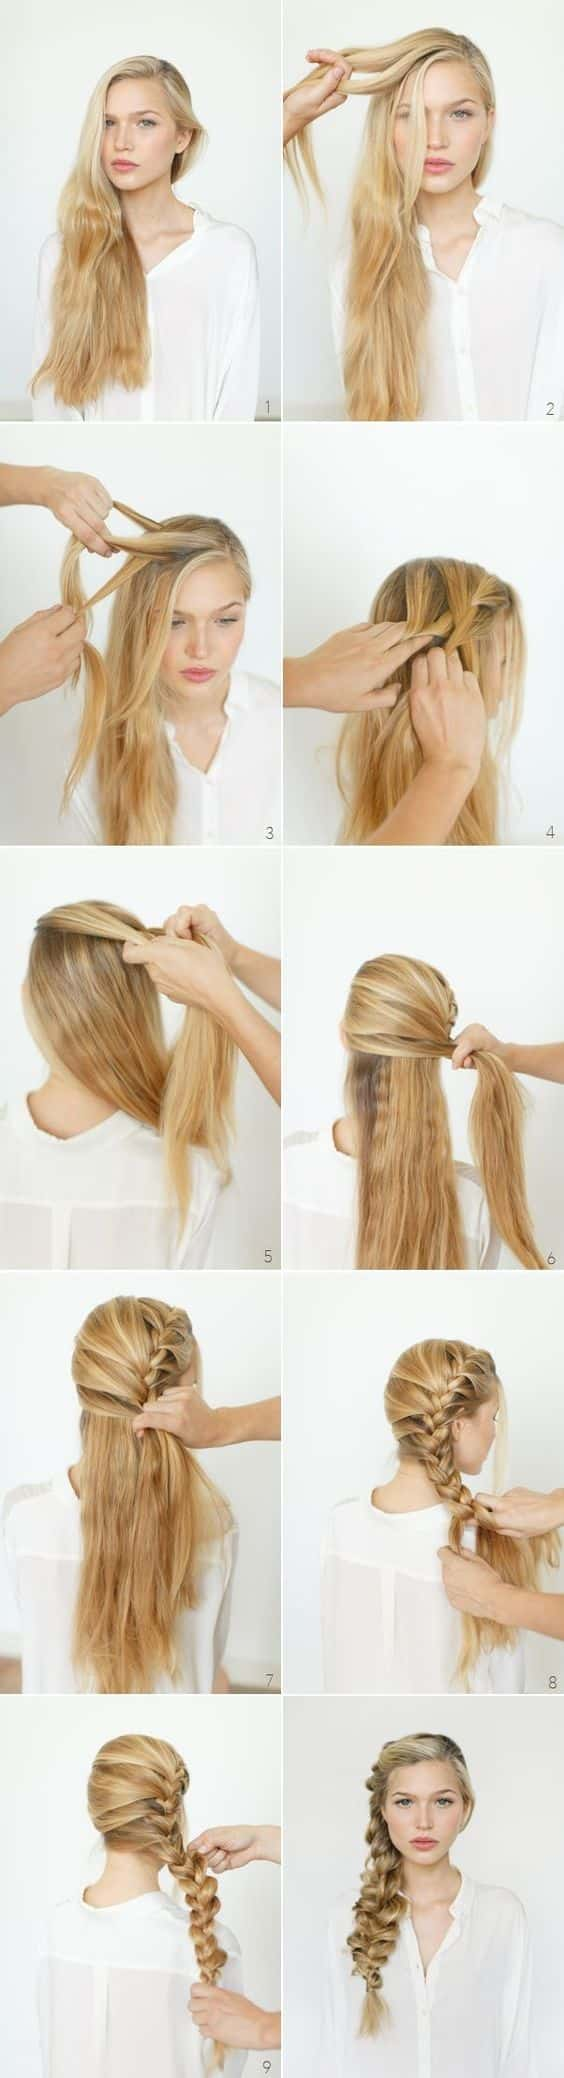 hairstyles-for-women-step-by-step